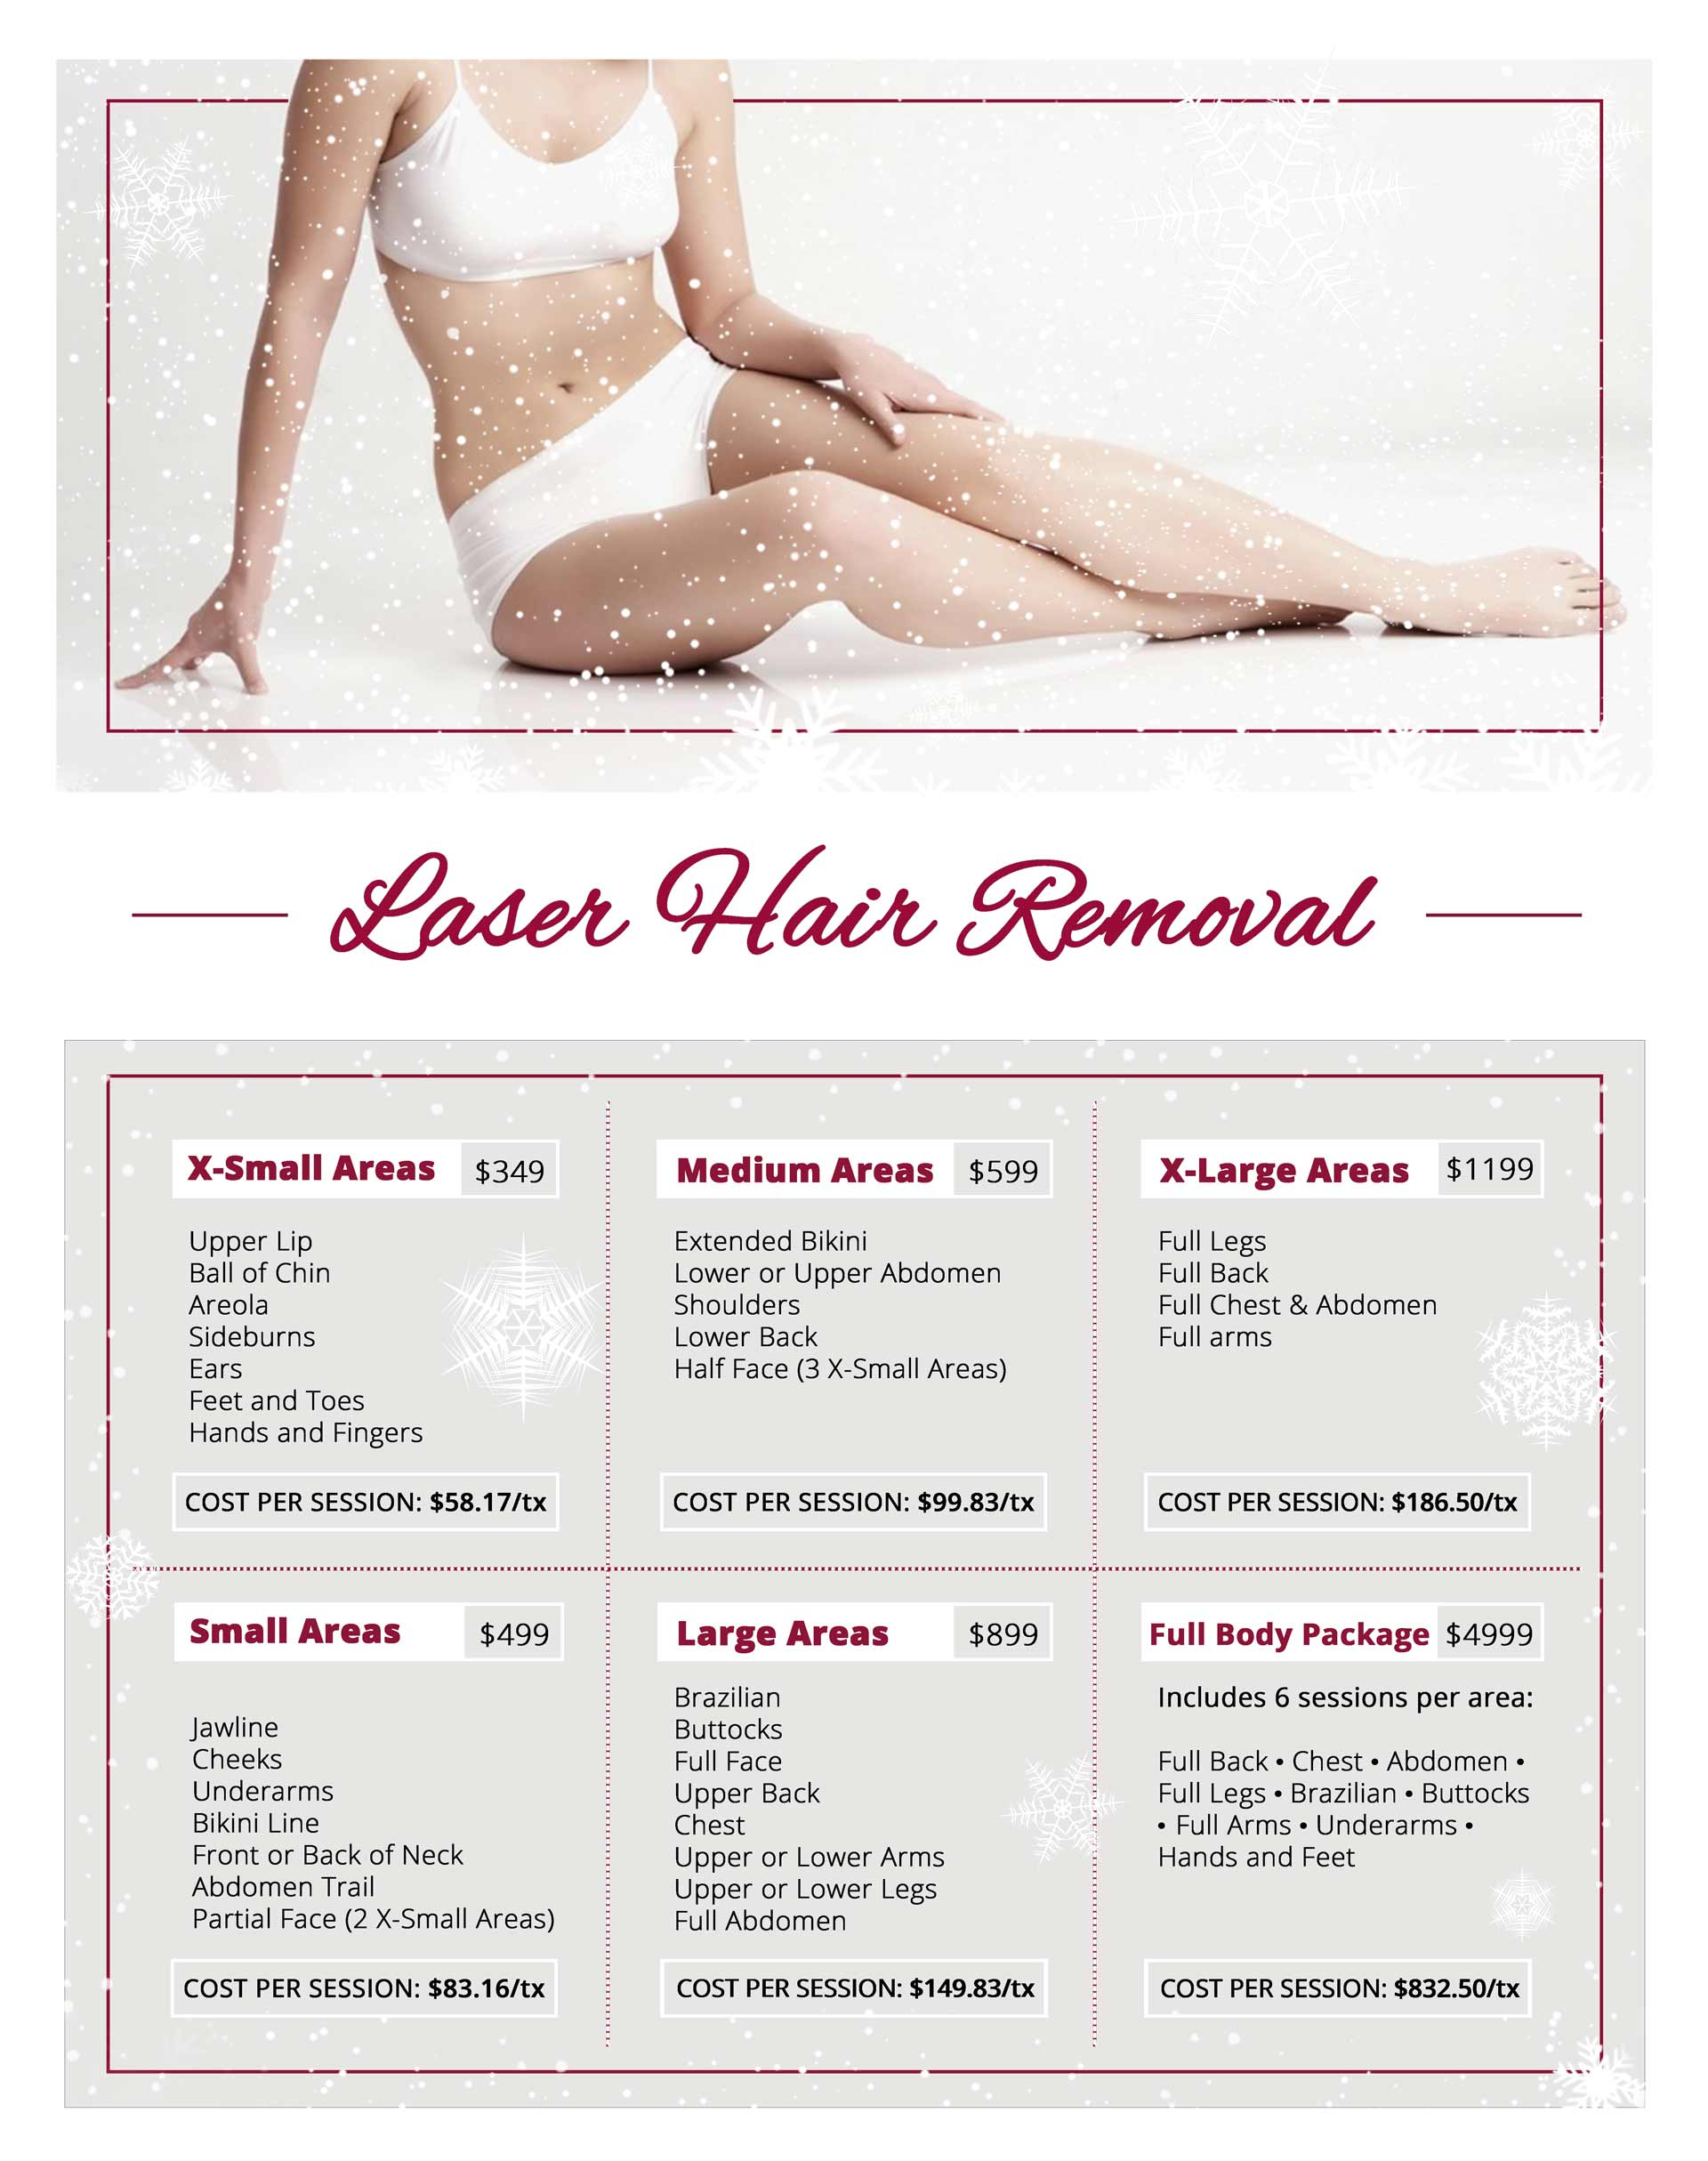 Laser Hair Removal Winter Promo Flyer